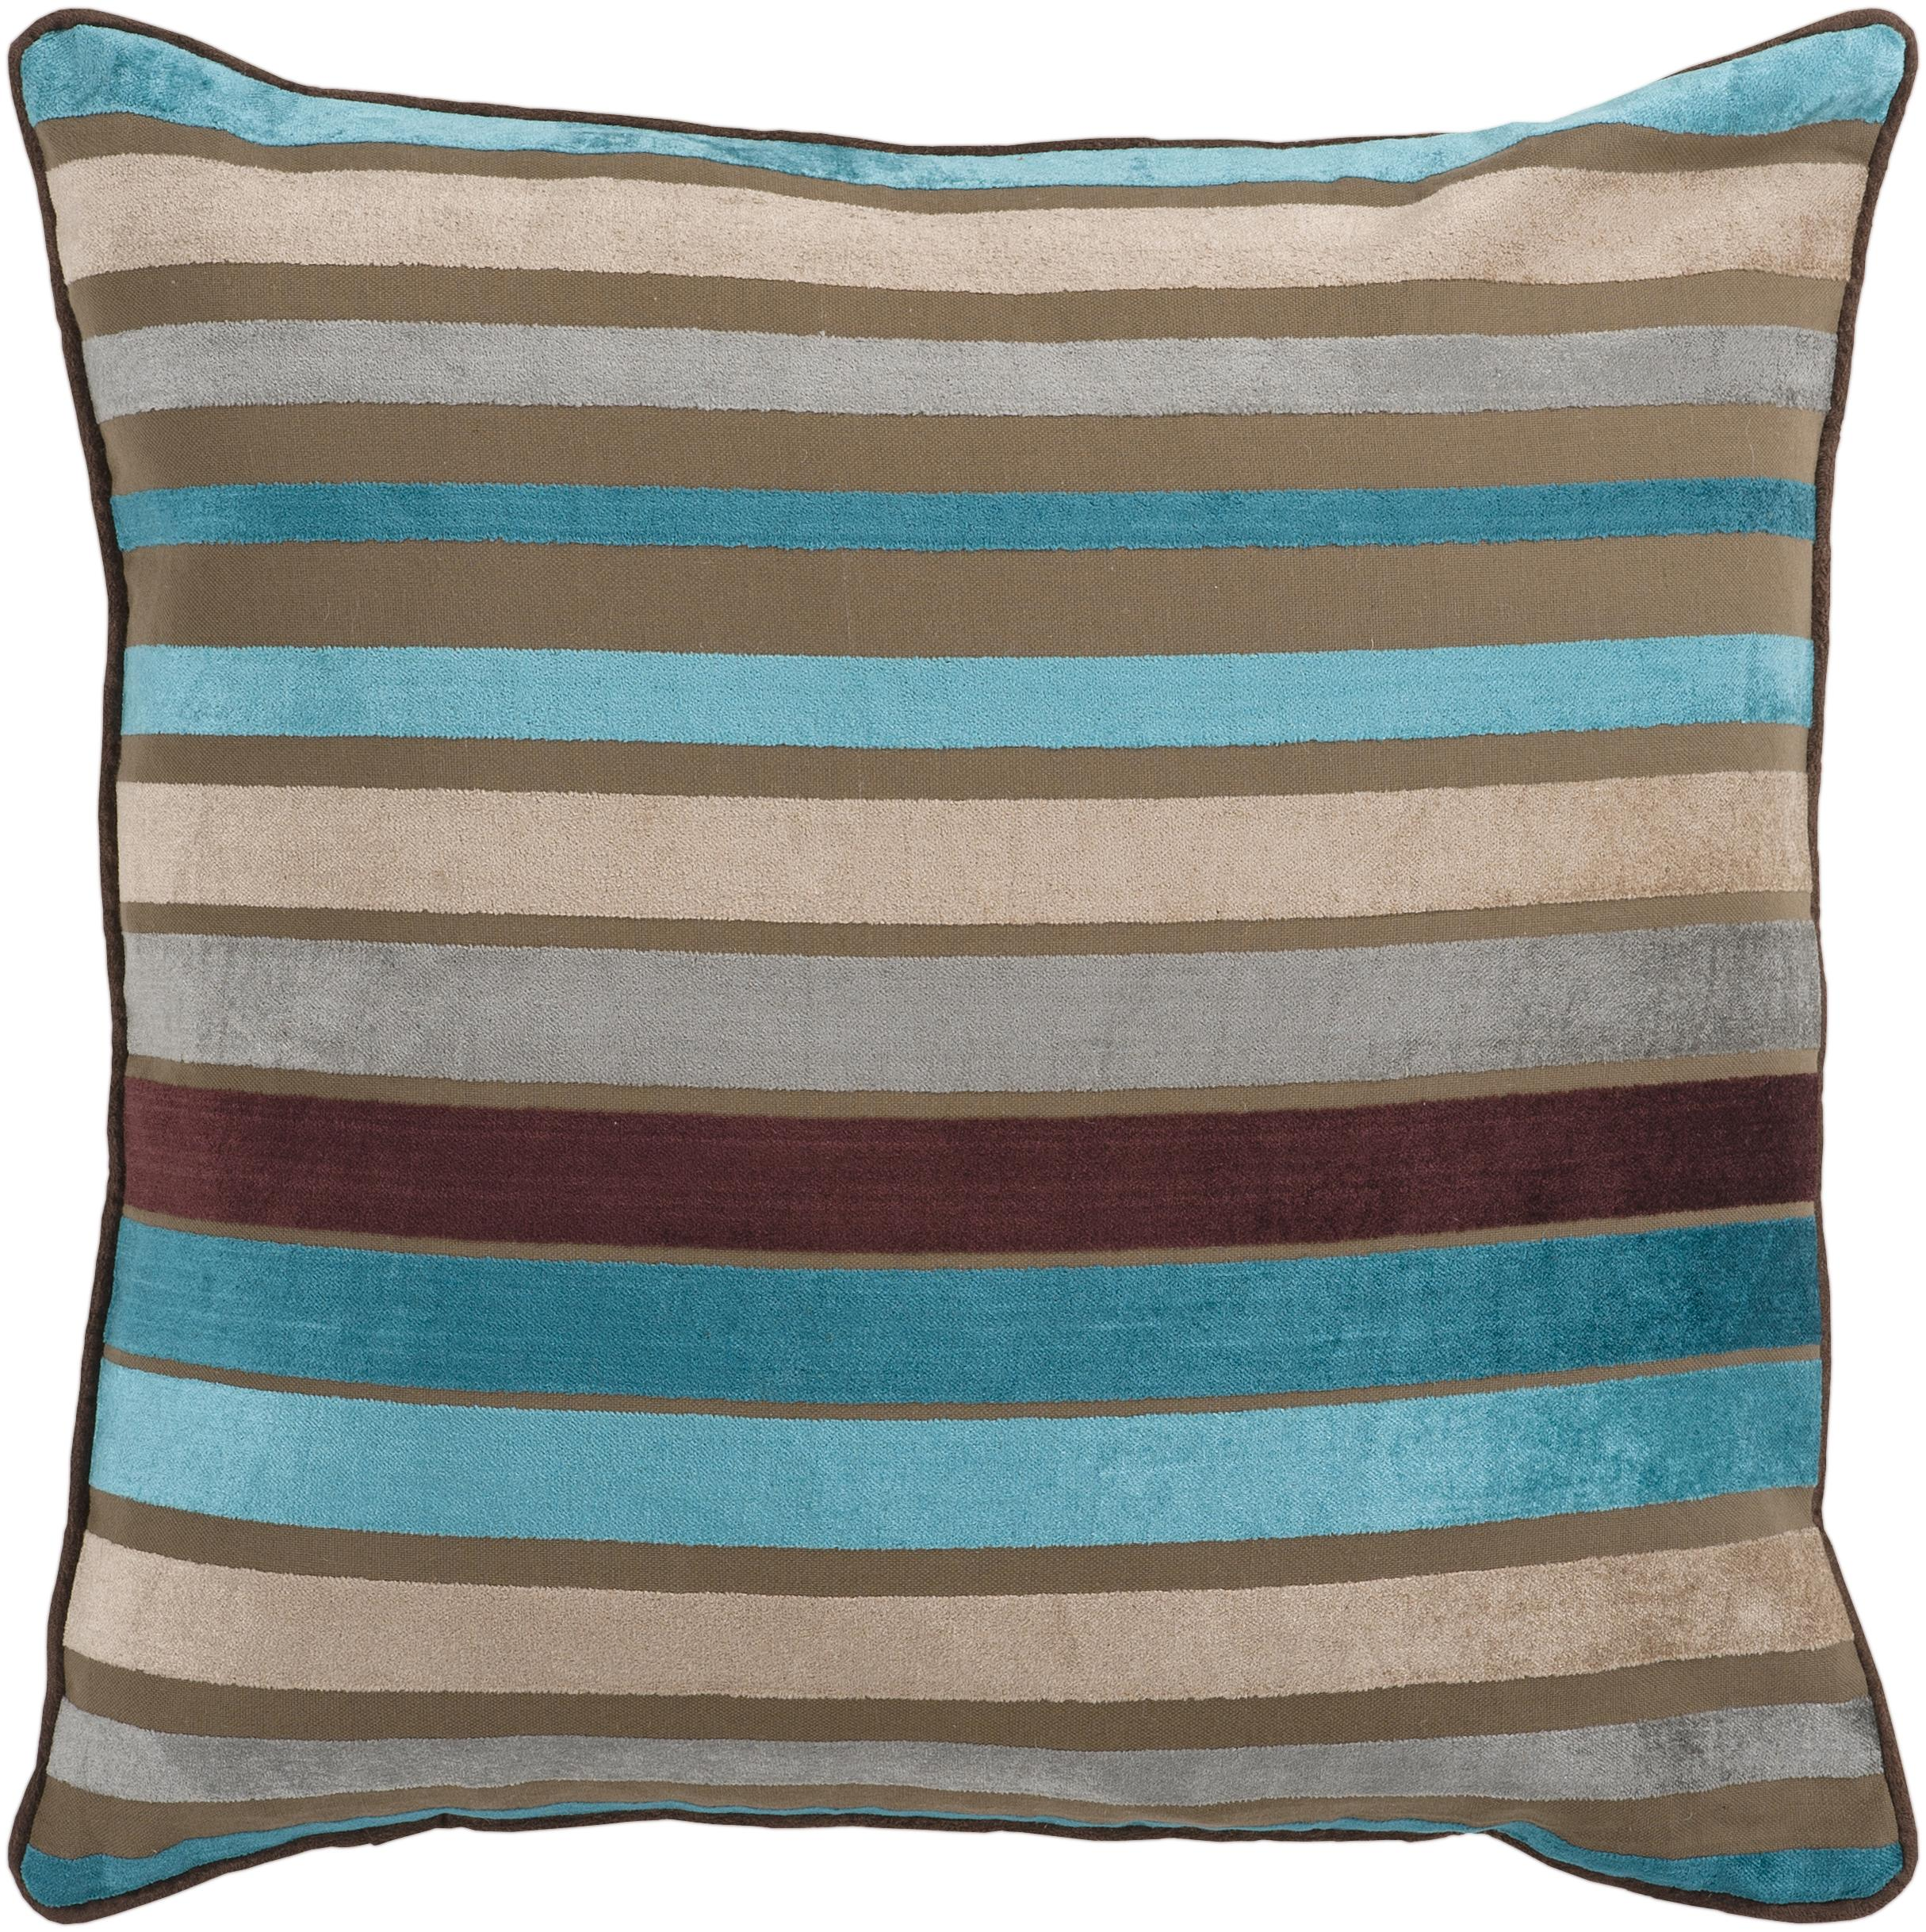 "Surya Rugs Pillows 18"" x 18"" Pillow - Item Number: JS024-1818P"